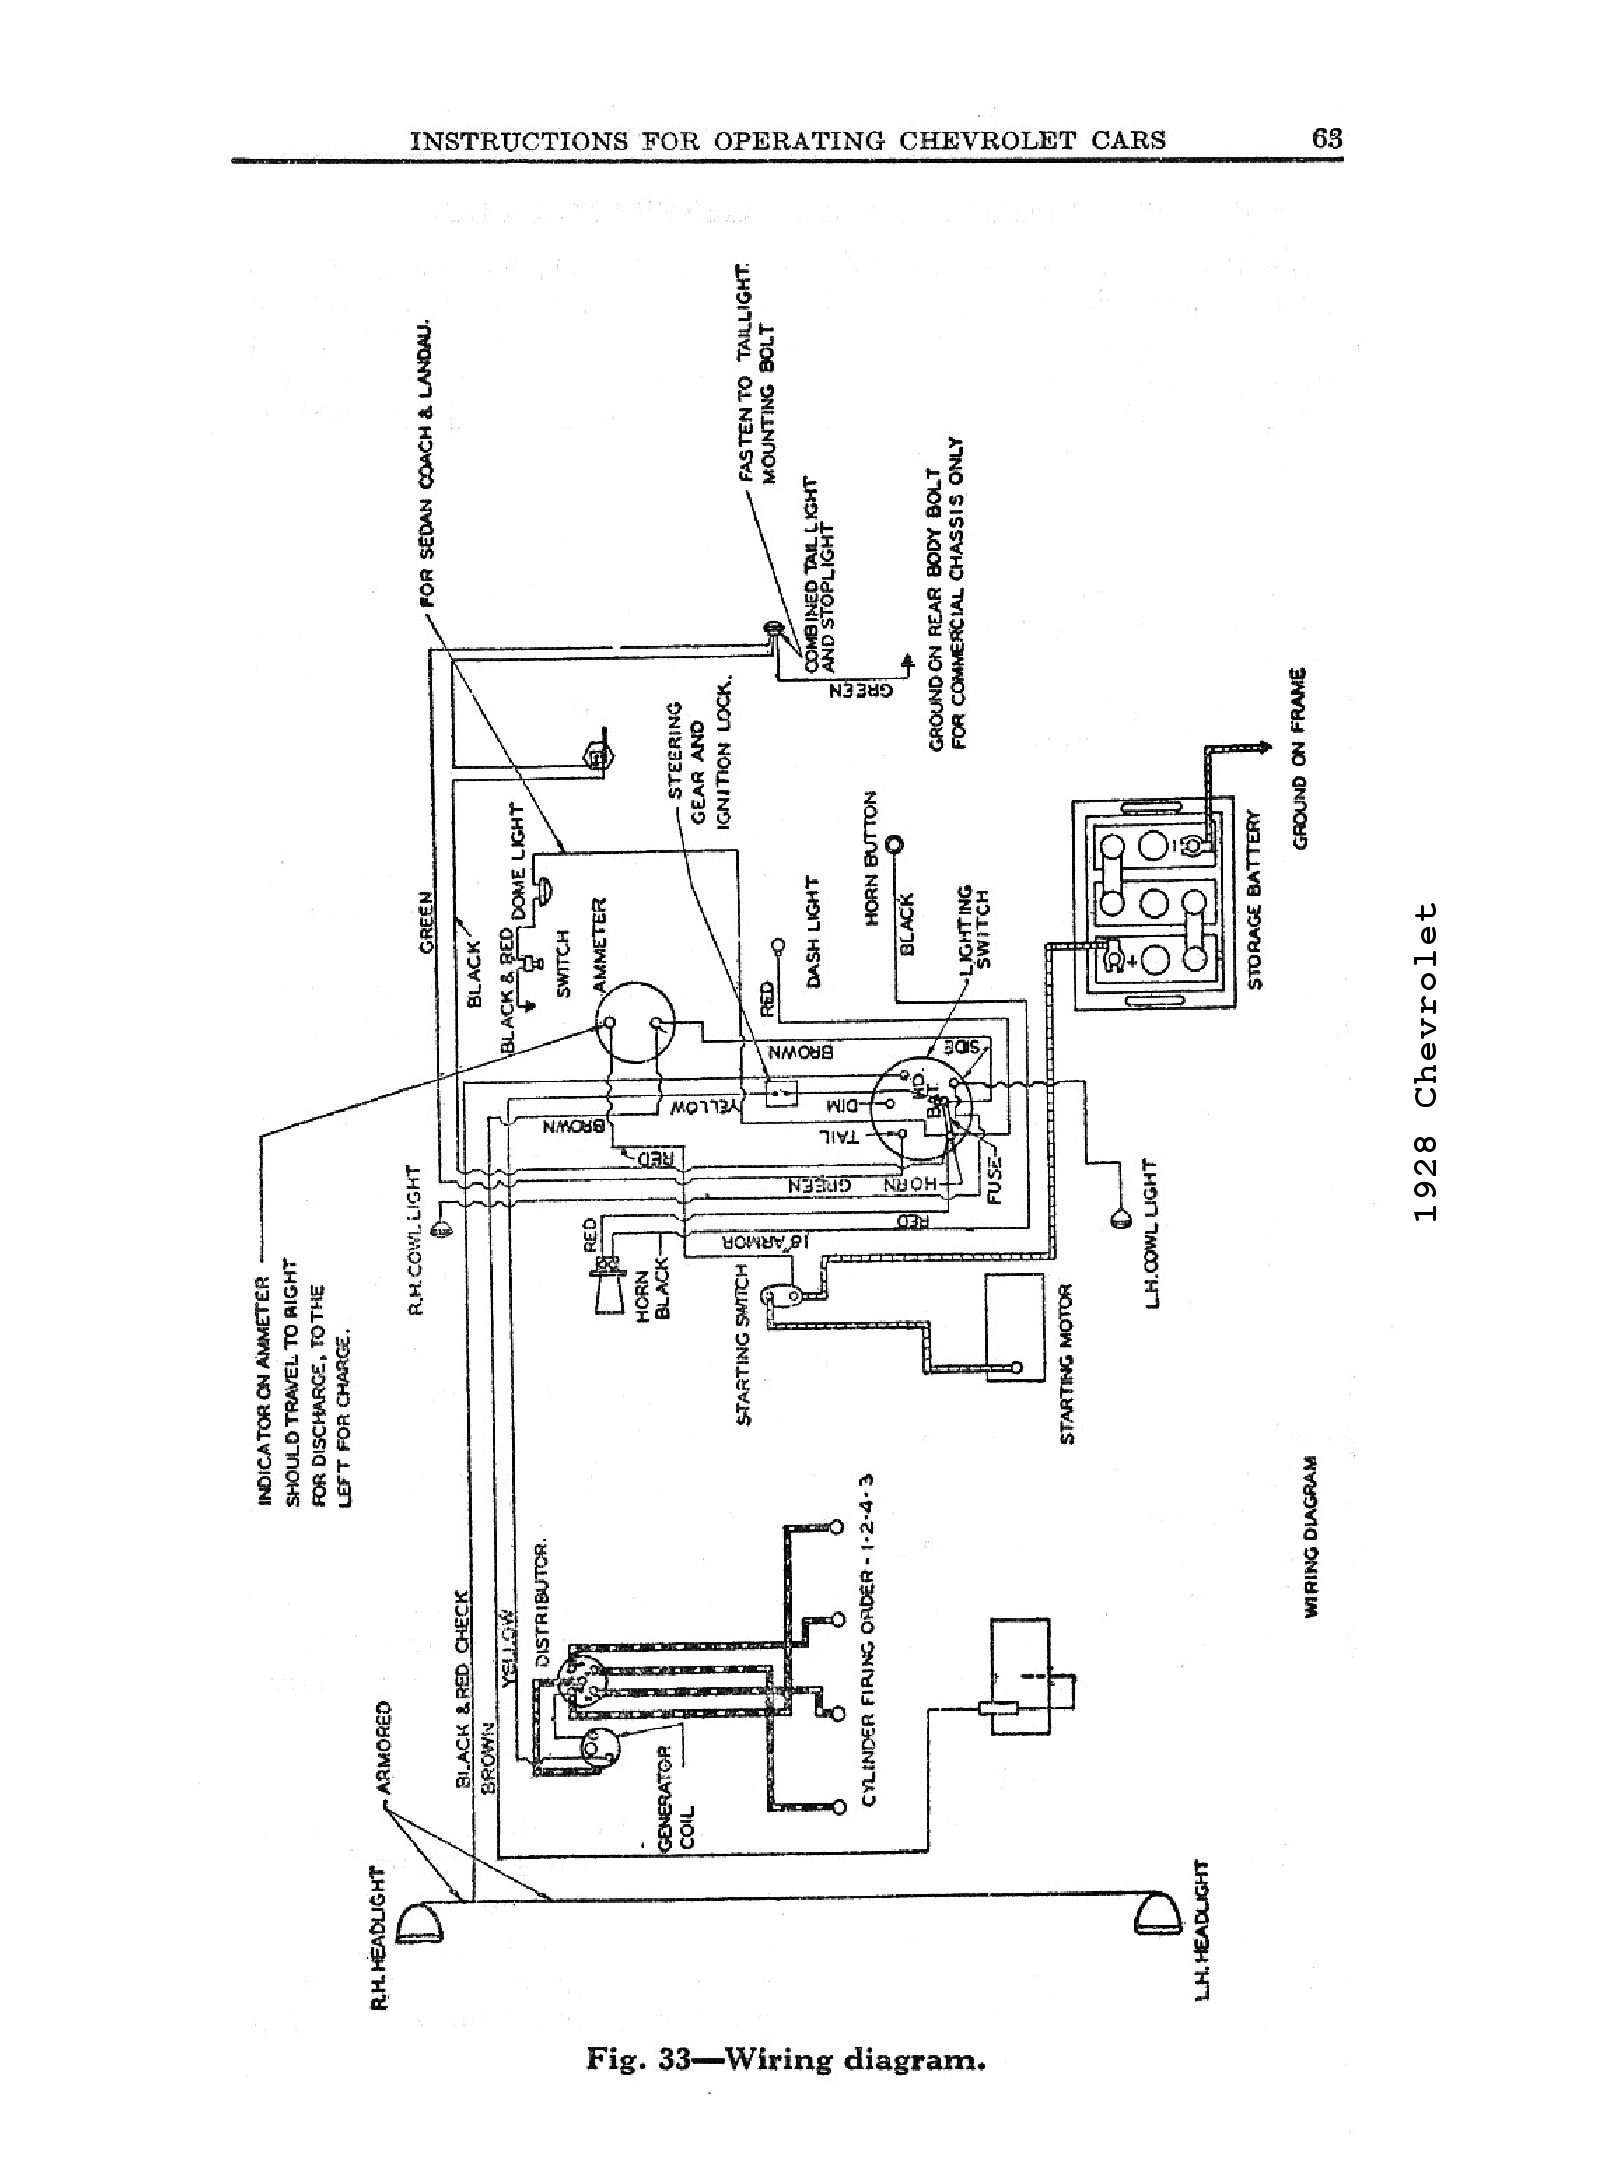 Diagram Chevy Truck Ignition Wiring Diagram Full